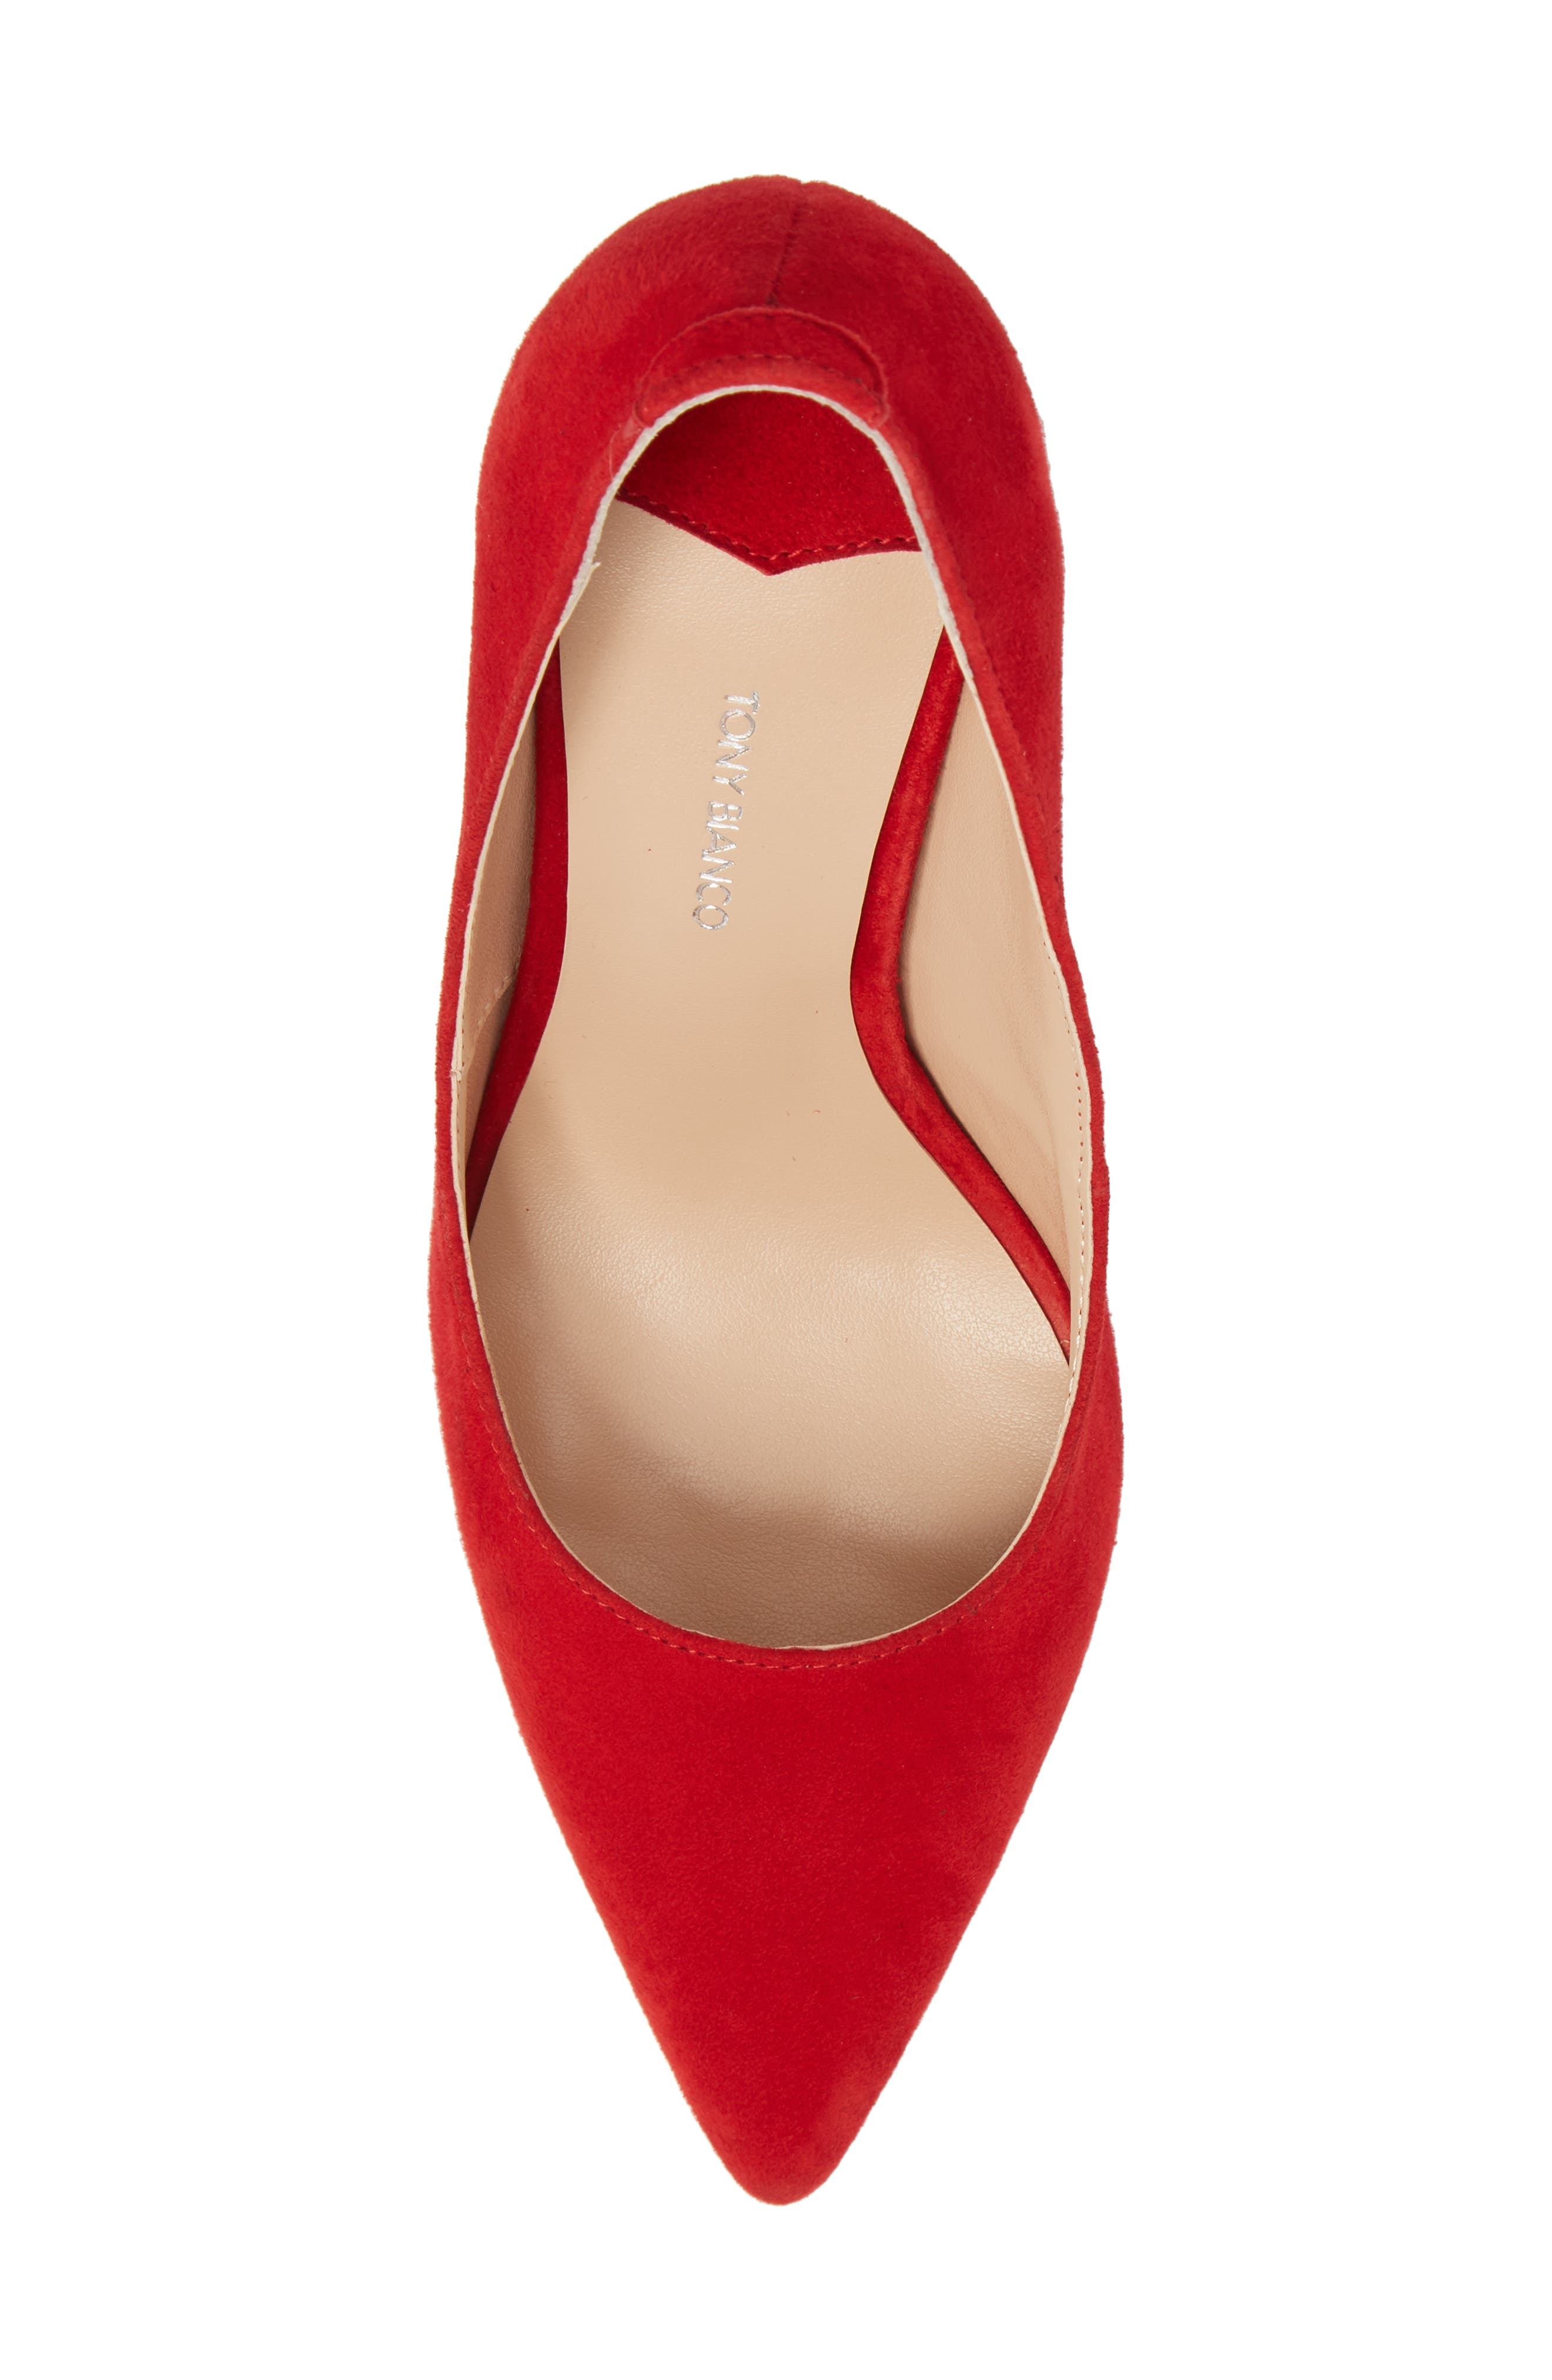 Lotus Pointy Toe Pump,                             Alternate thumbnail 5, color,                             FIRE SUEDE